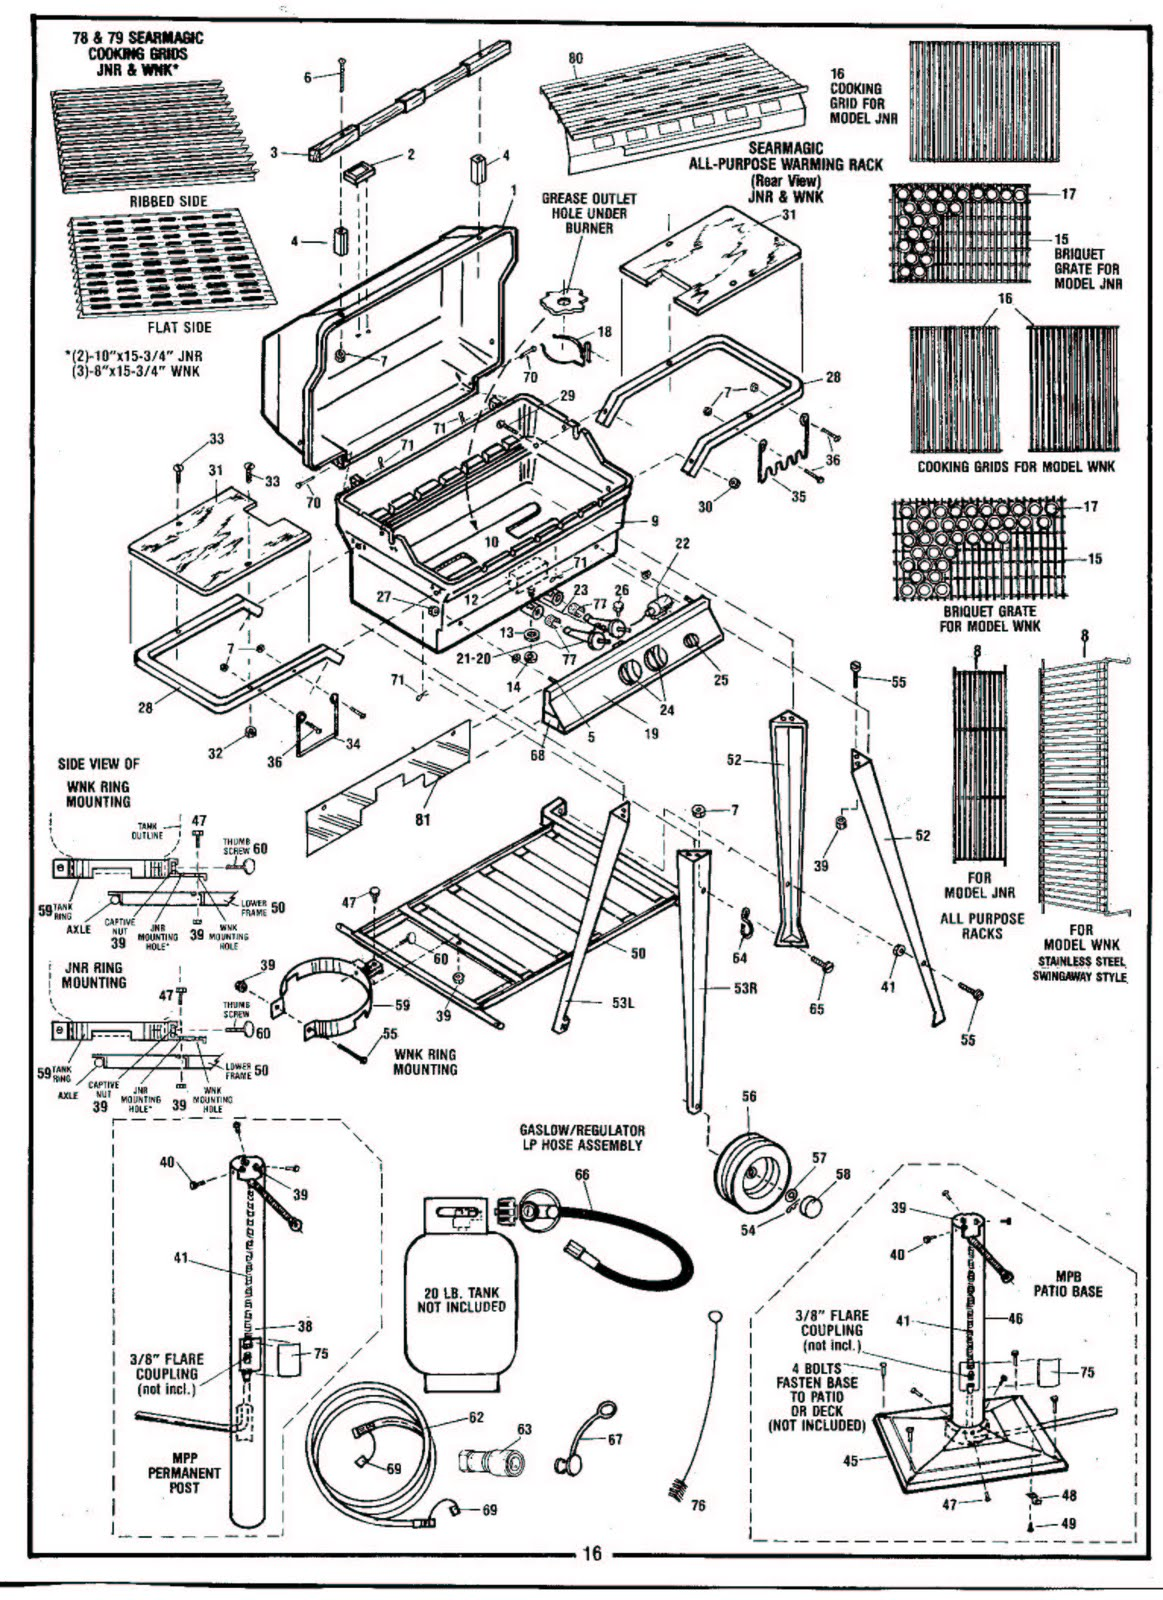 Douglas A. Ploss: Technical illustrations are a blast!